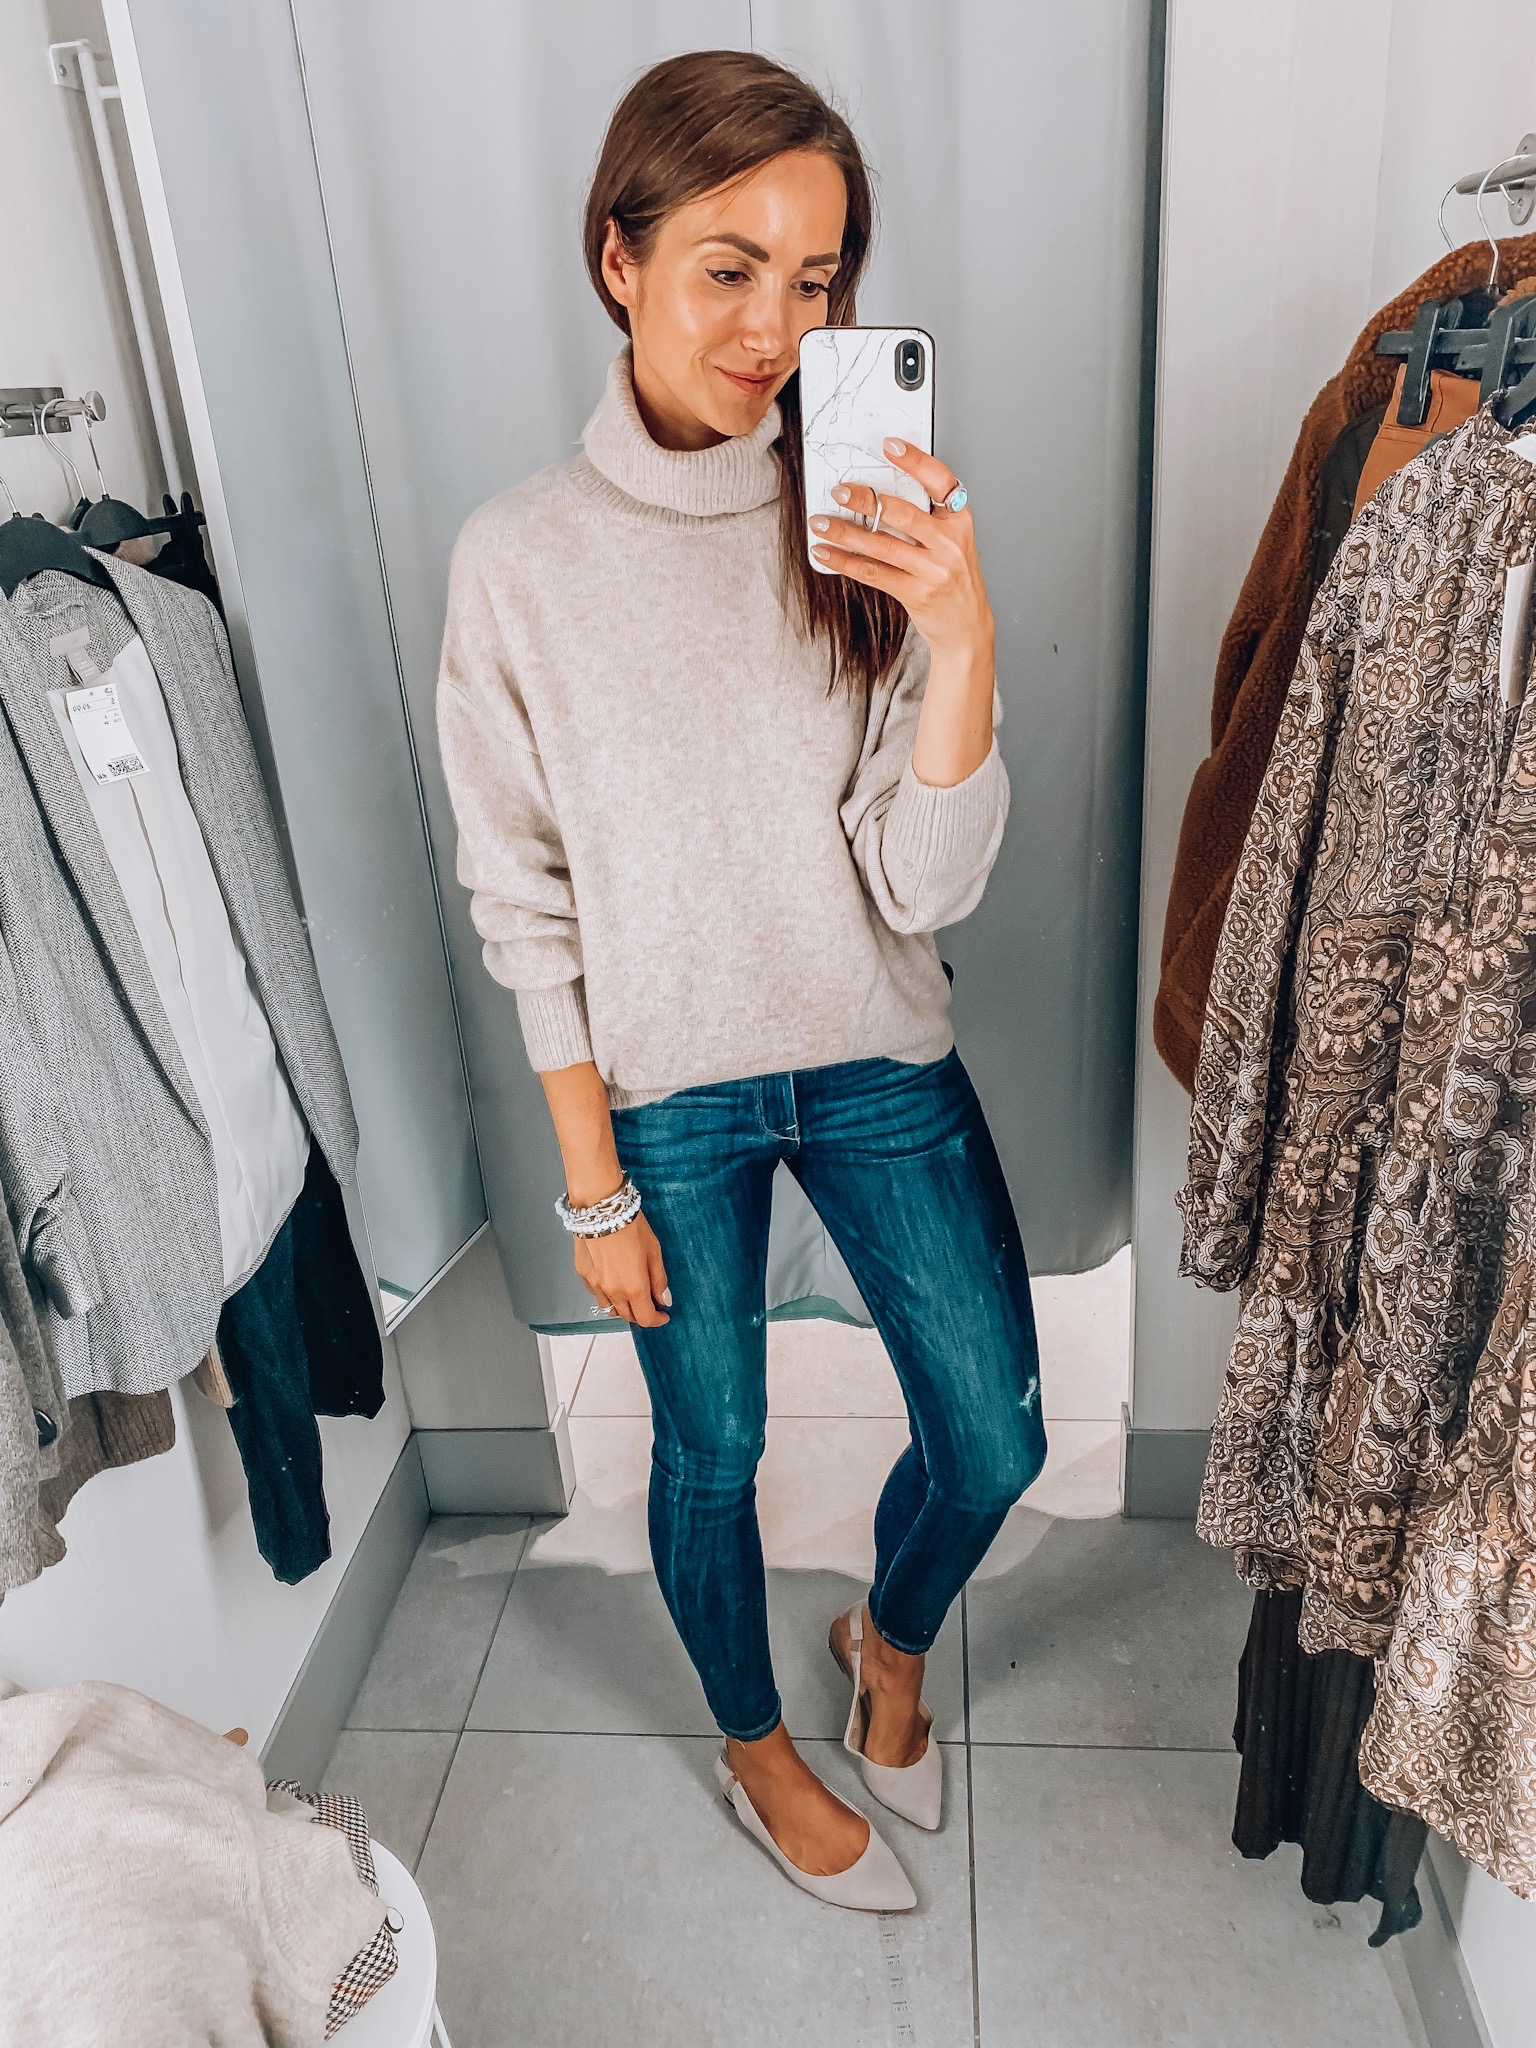 Cowl neck sweater, h&m try-on